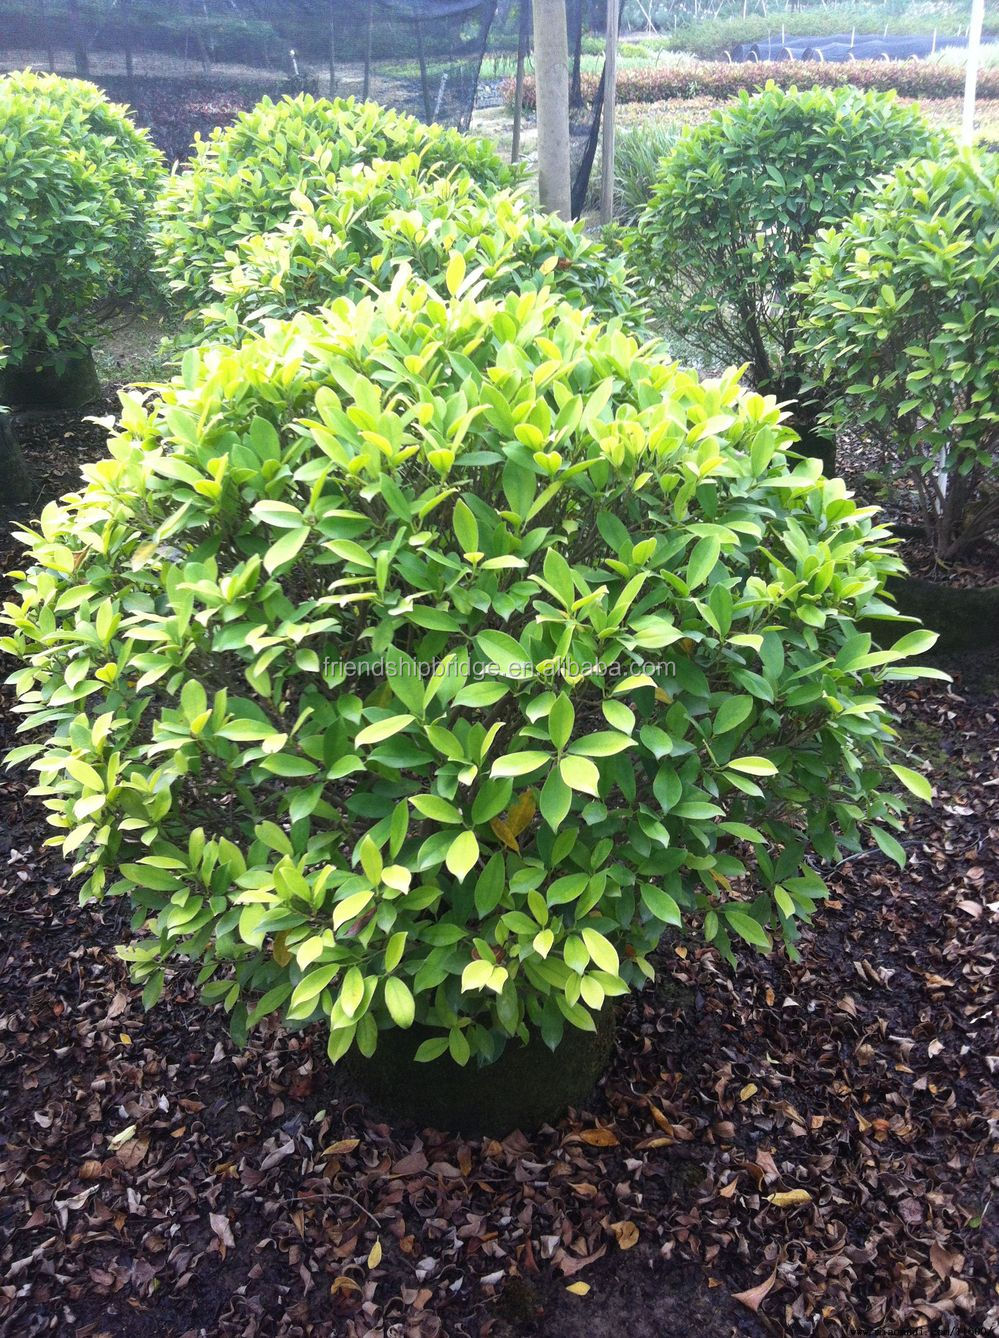 Outdoor ornamental plants - Evergreen Foliage Outdoor Landscaping Decorative Ornamental Plants Ficus Microcarpa Cv Golden Leaves